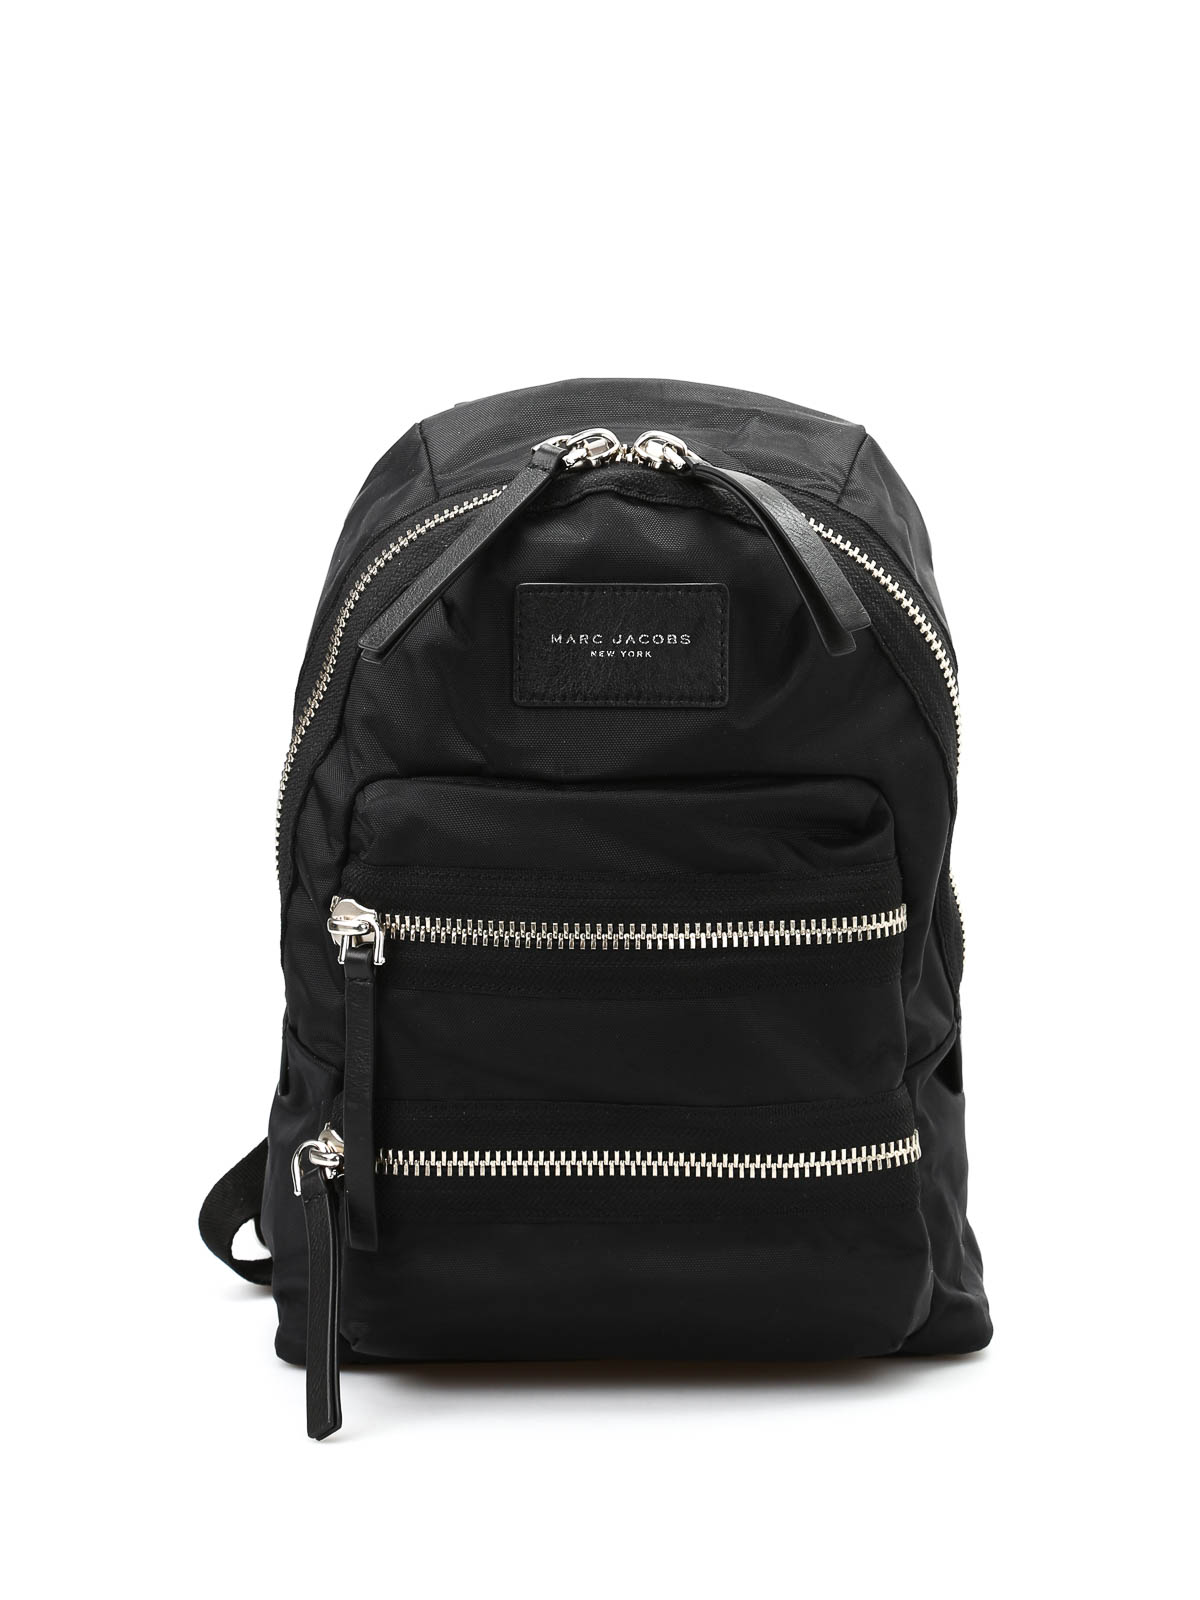 biker mini nylon backpack by marc jacobs backpacks. Black Bedroom Furniture Sets. Home Design Ideas